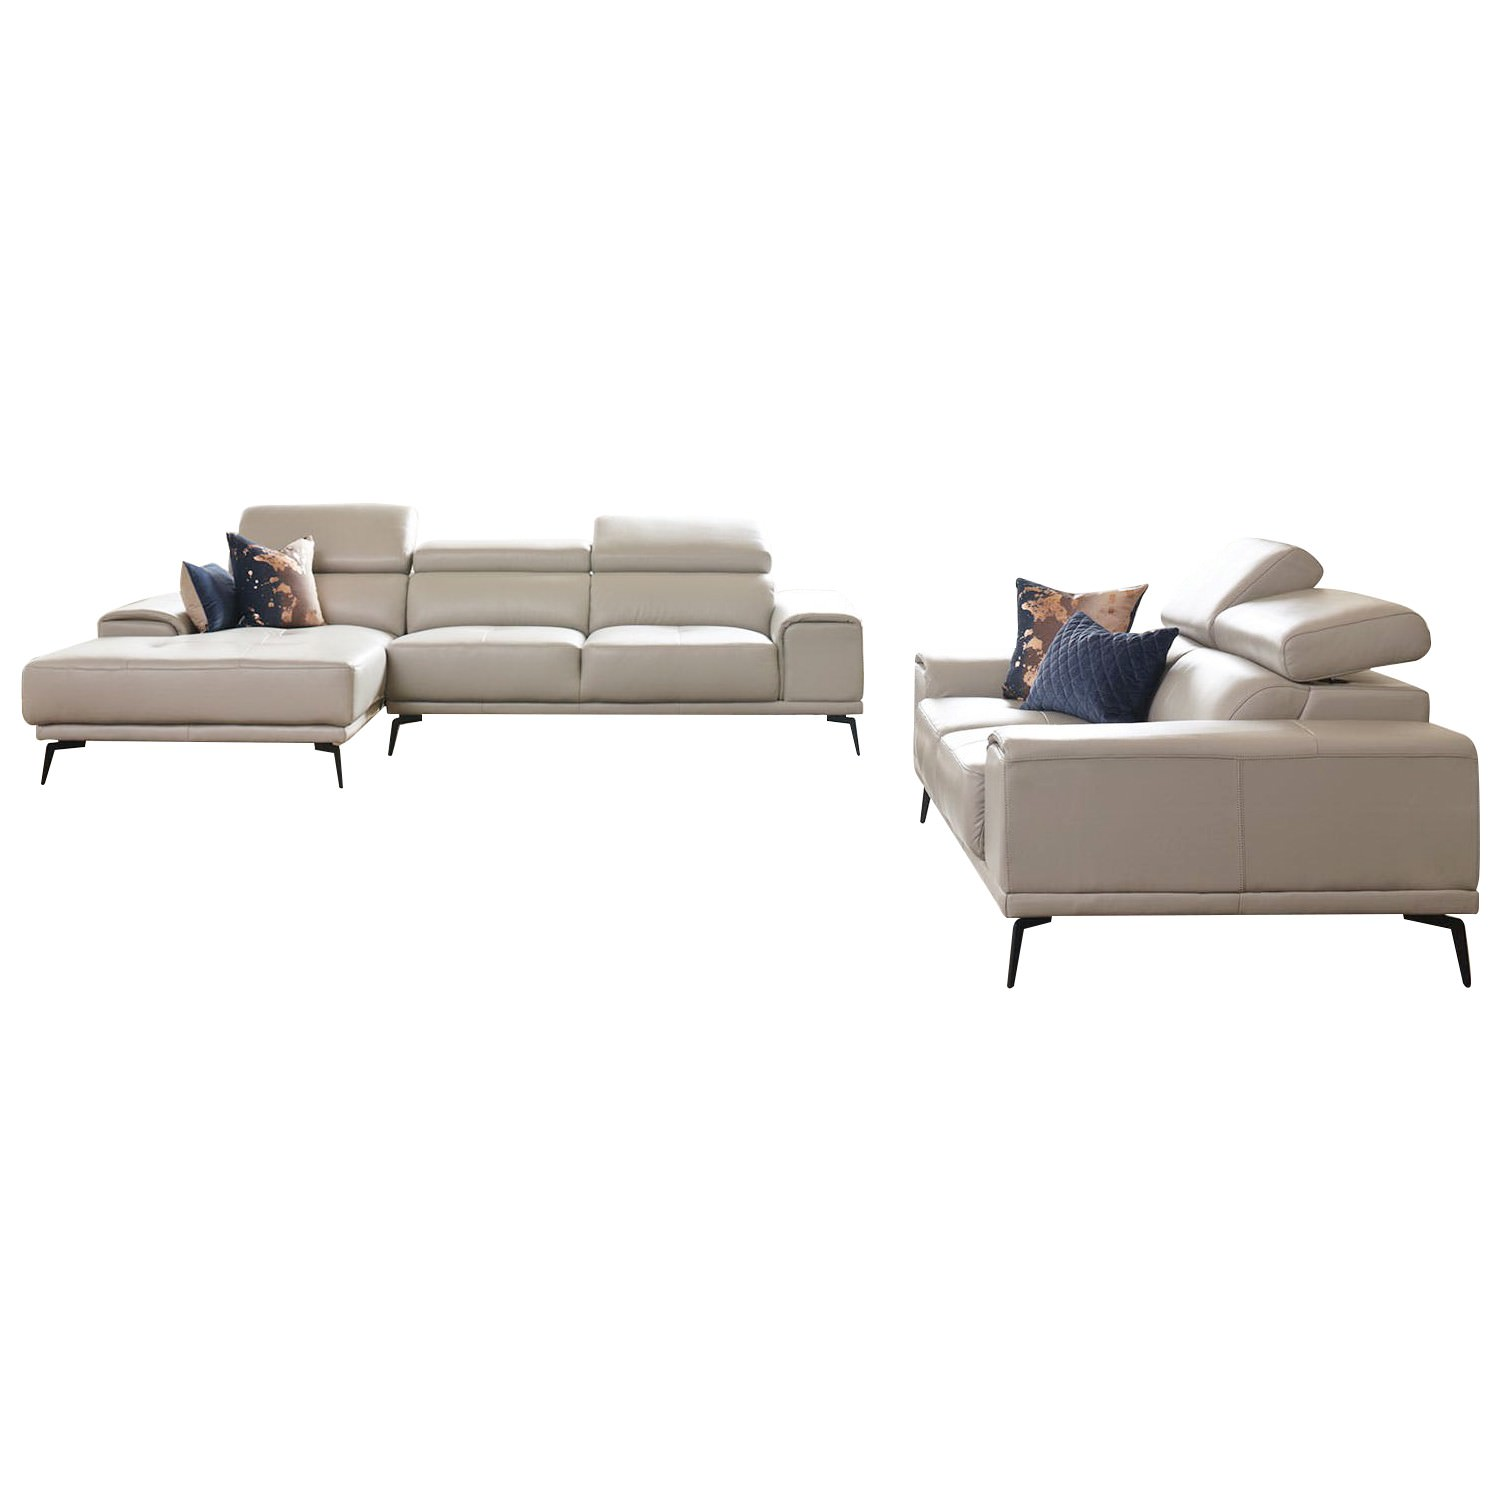 Avezzano 2 Piece Leather Corner Sofa Set, 2 Seater with LHF Chaise + 2 Seater, Silver